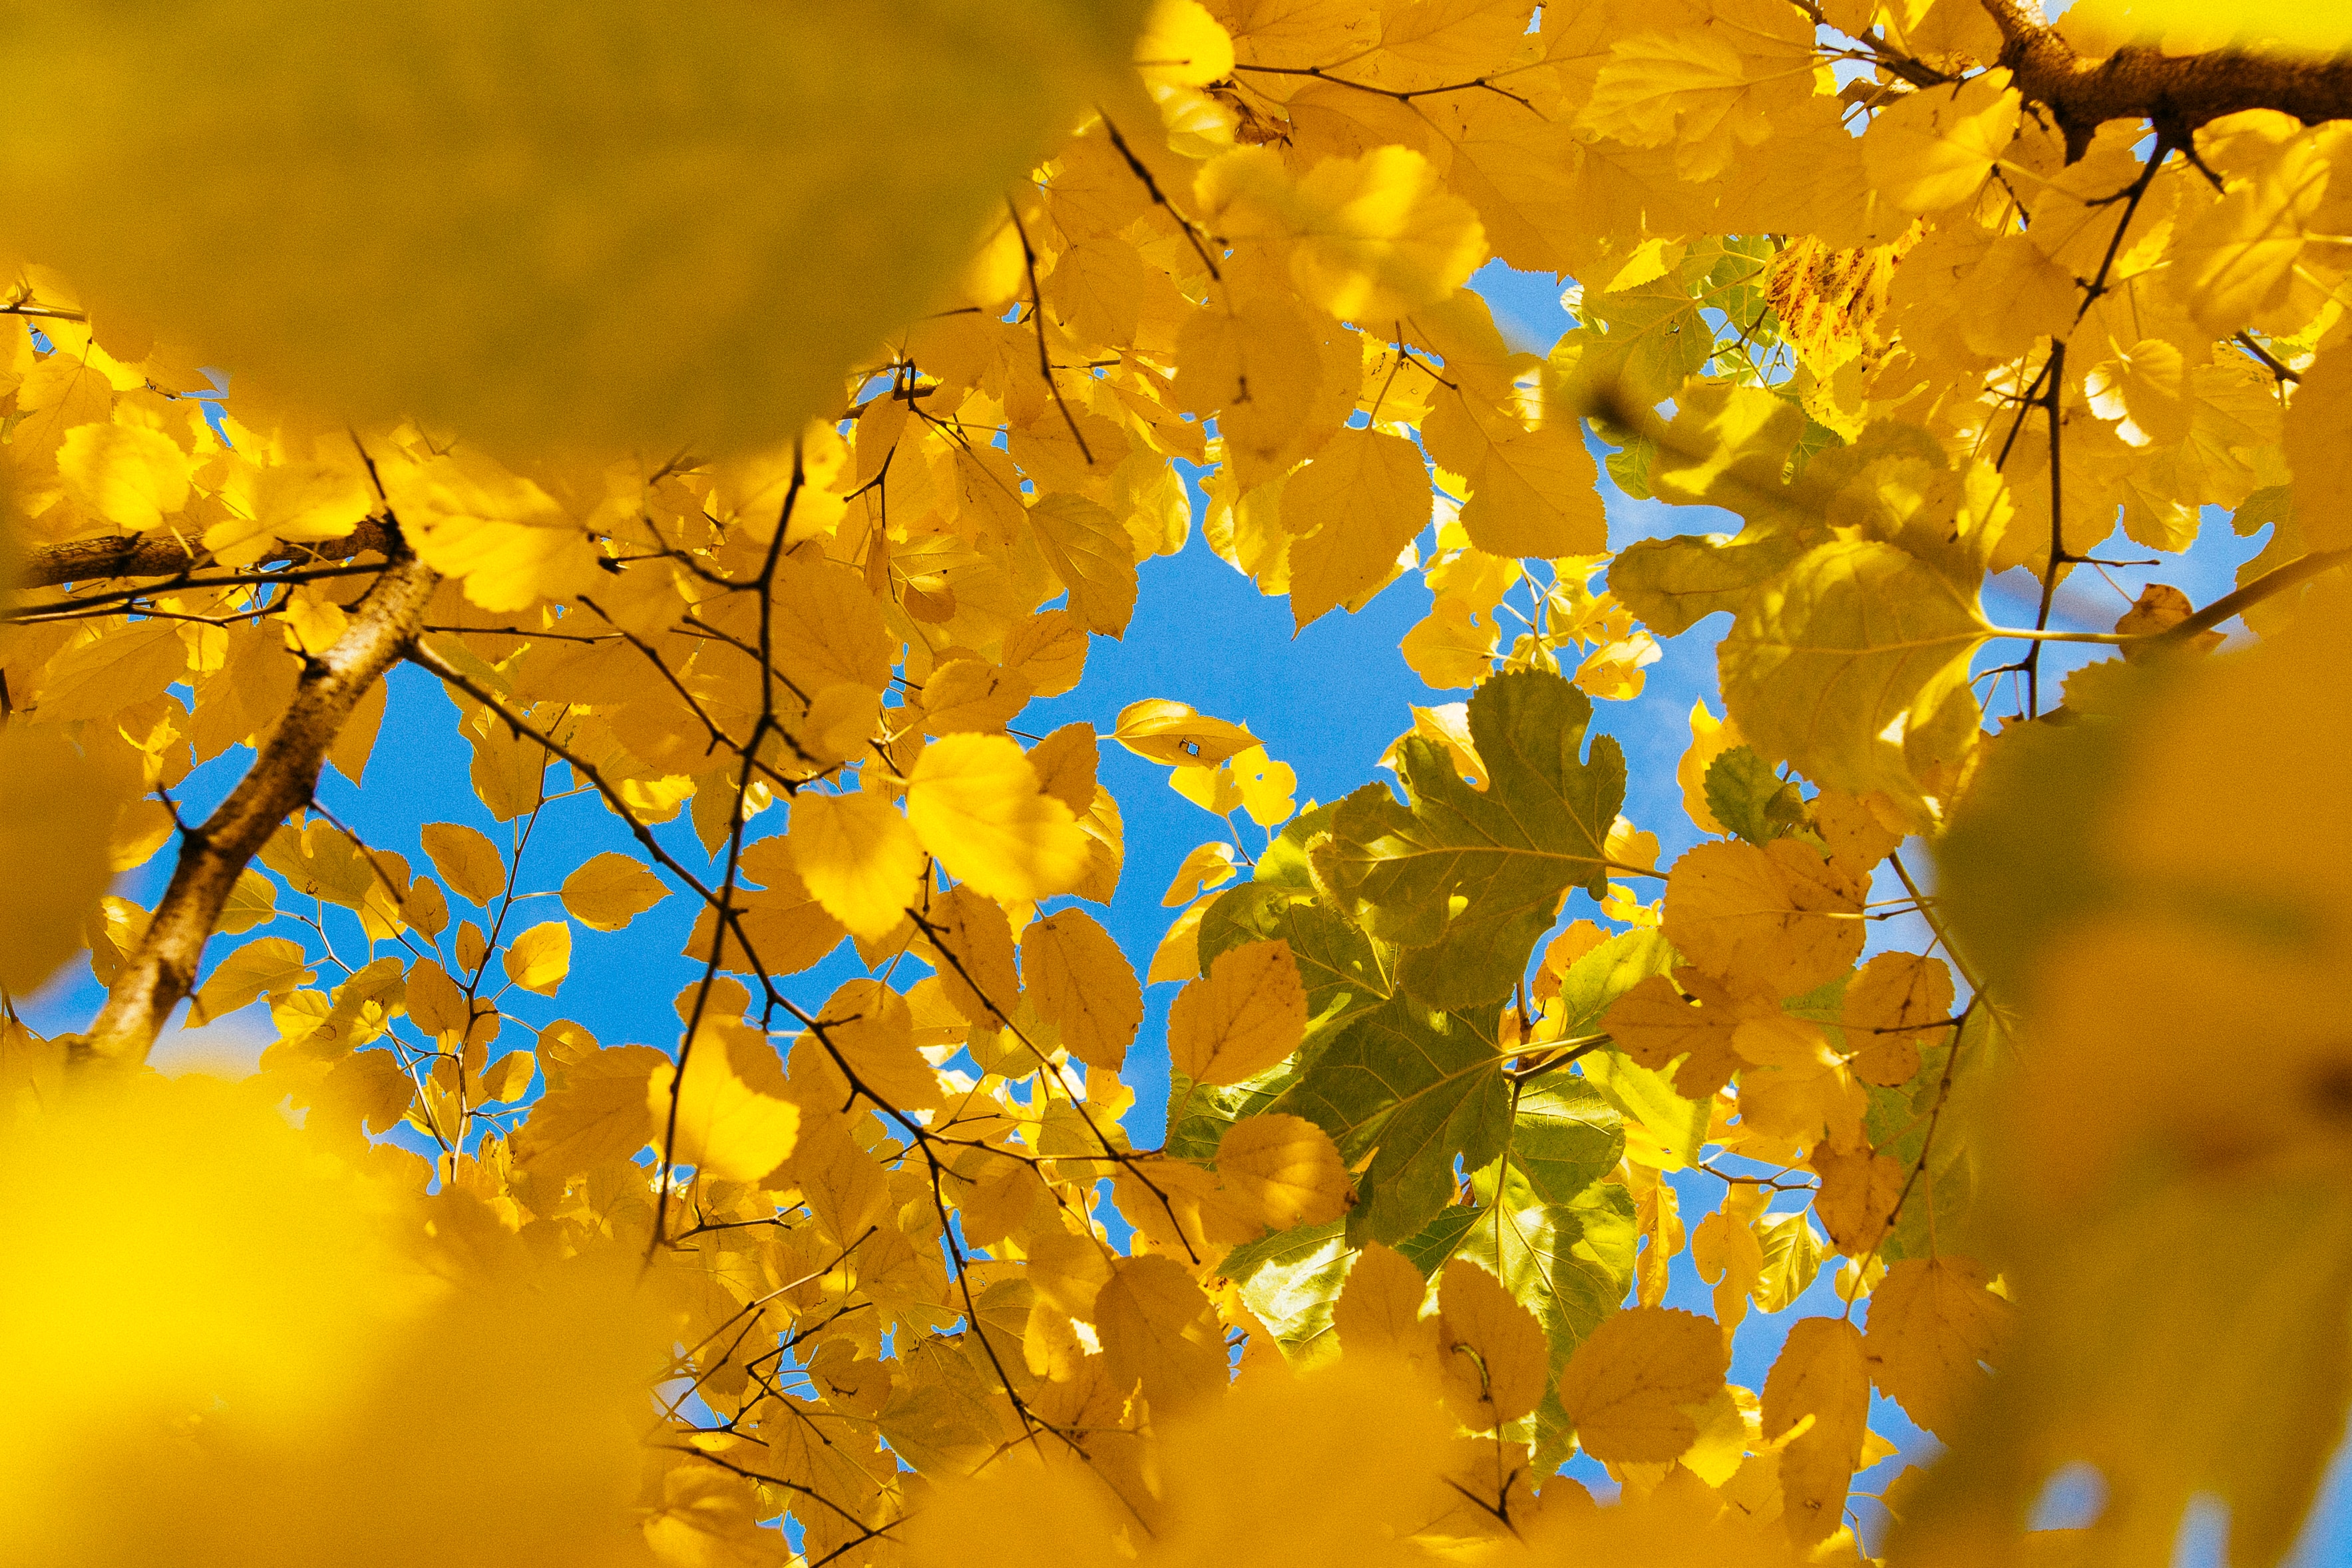 wallpaper Yellow leafed tree during daytime